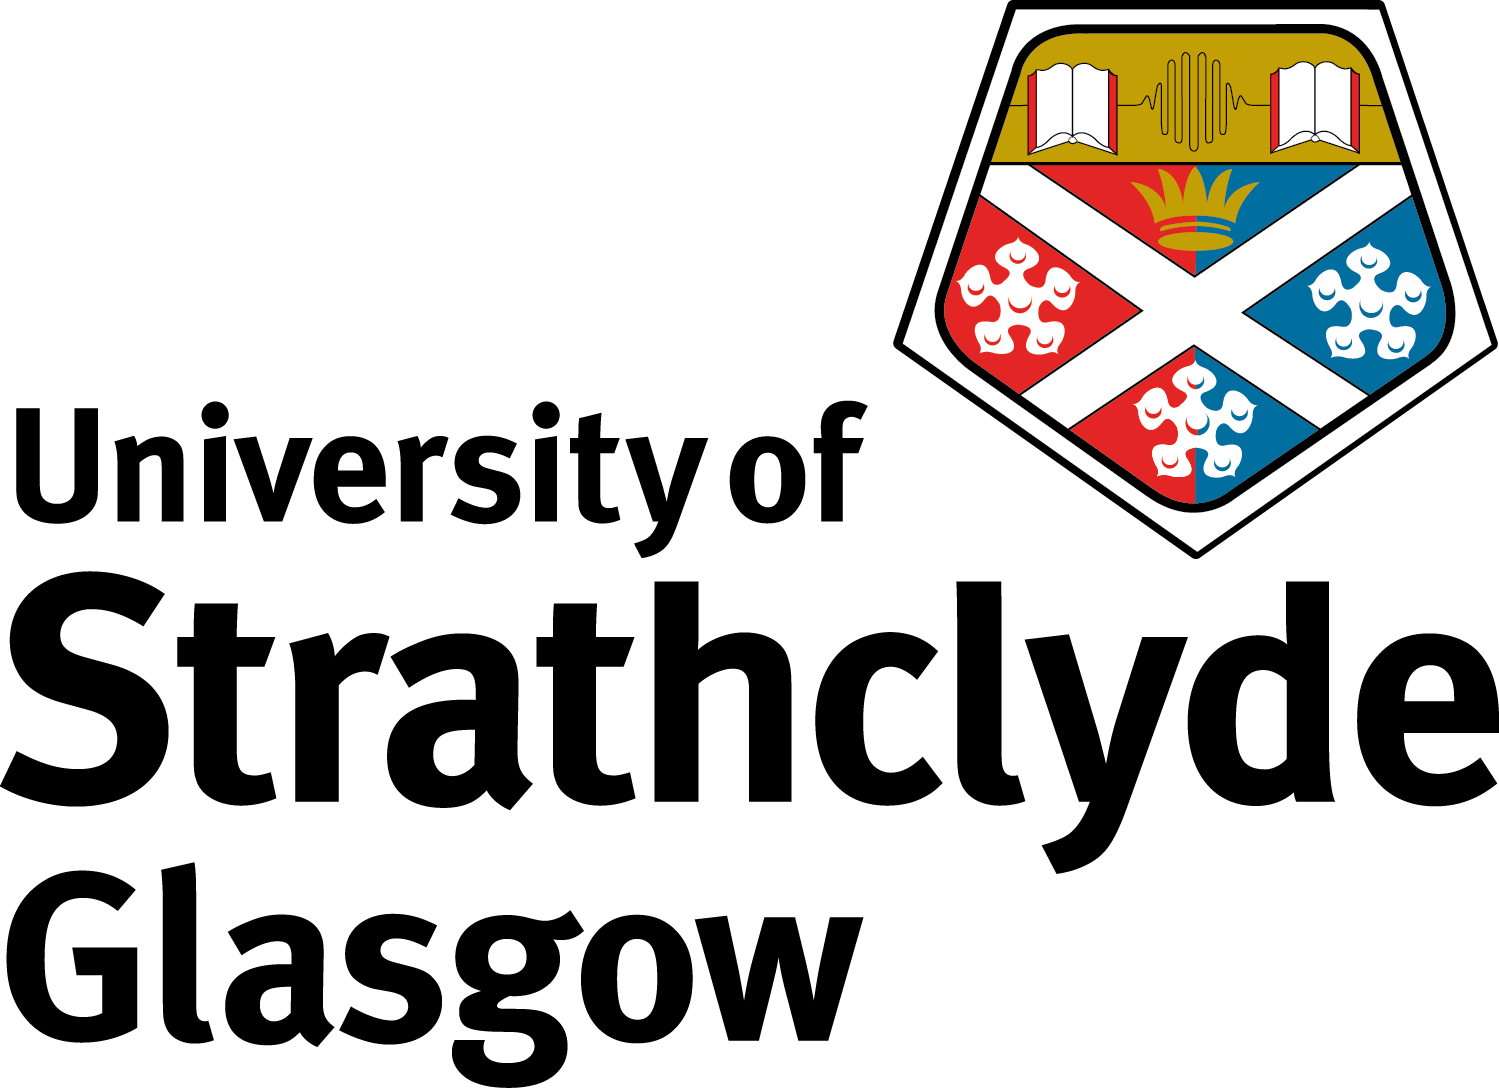 Patrick Bayer | University of Strathclyde